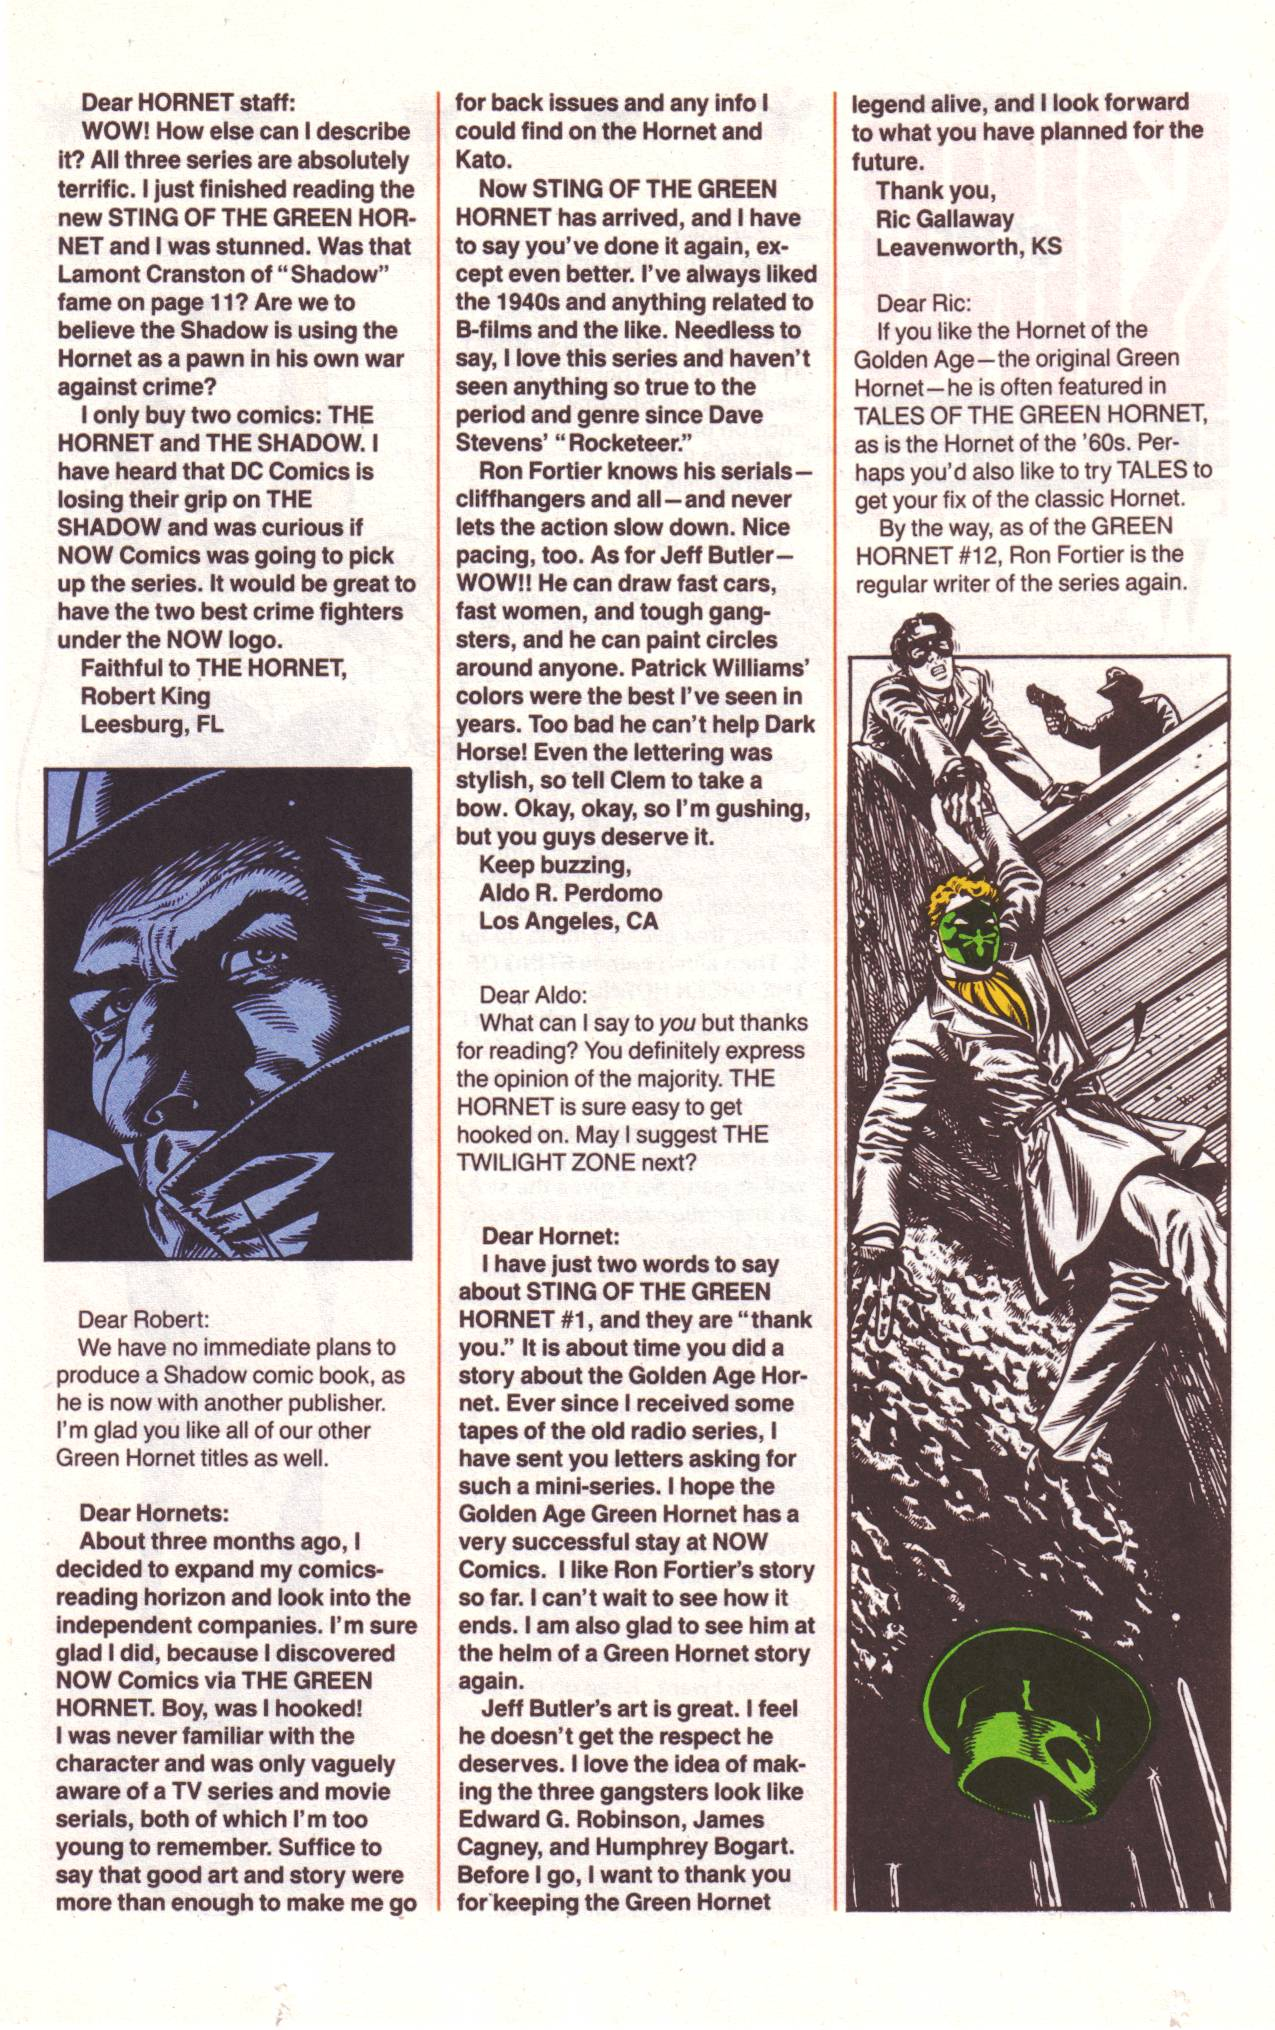 Read online Sting of The Green Hornet comic -  Issue #2 - 26